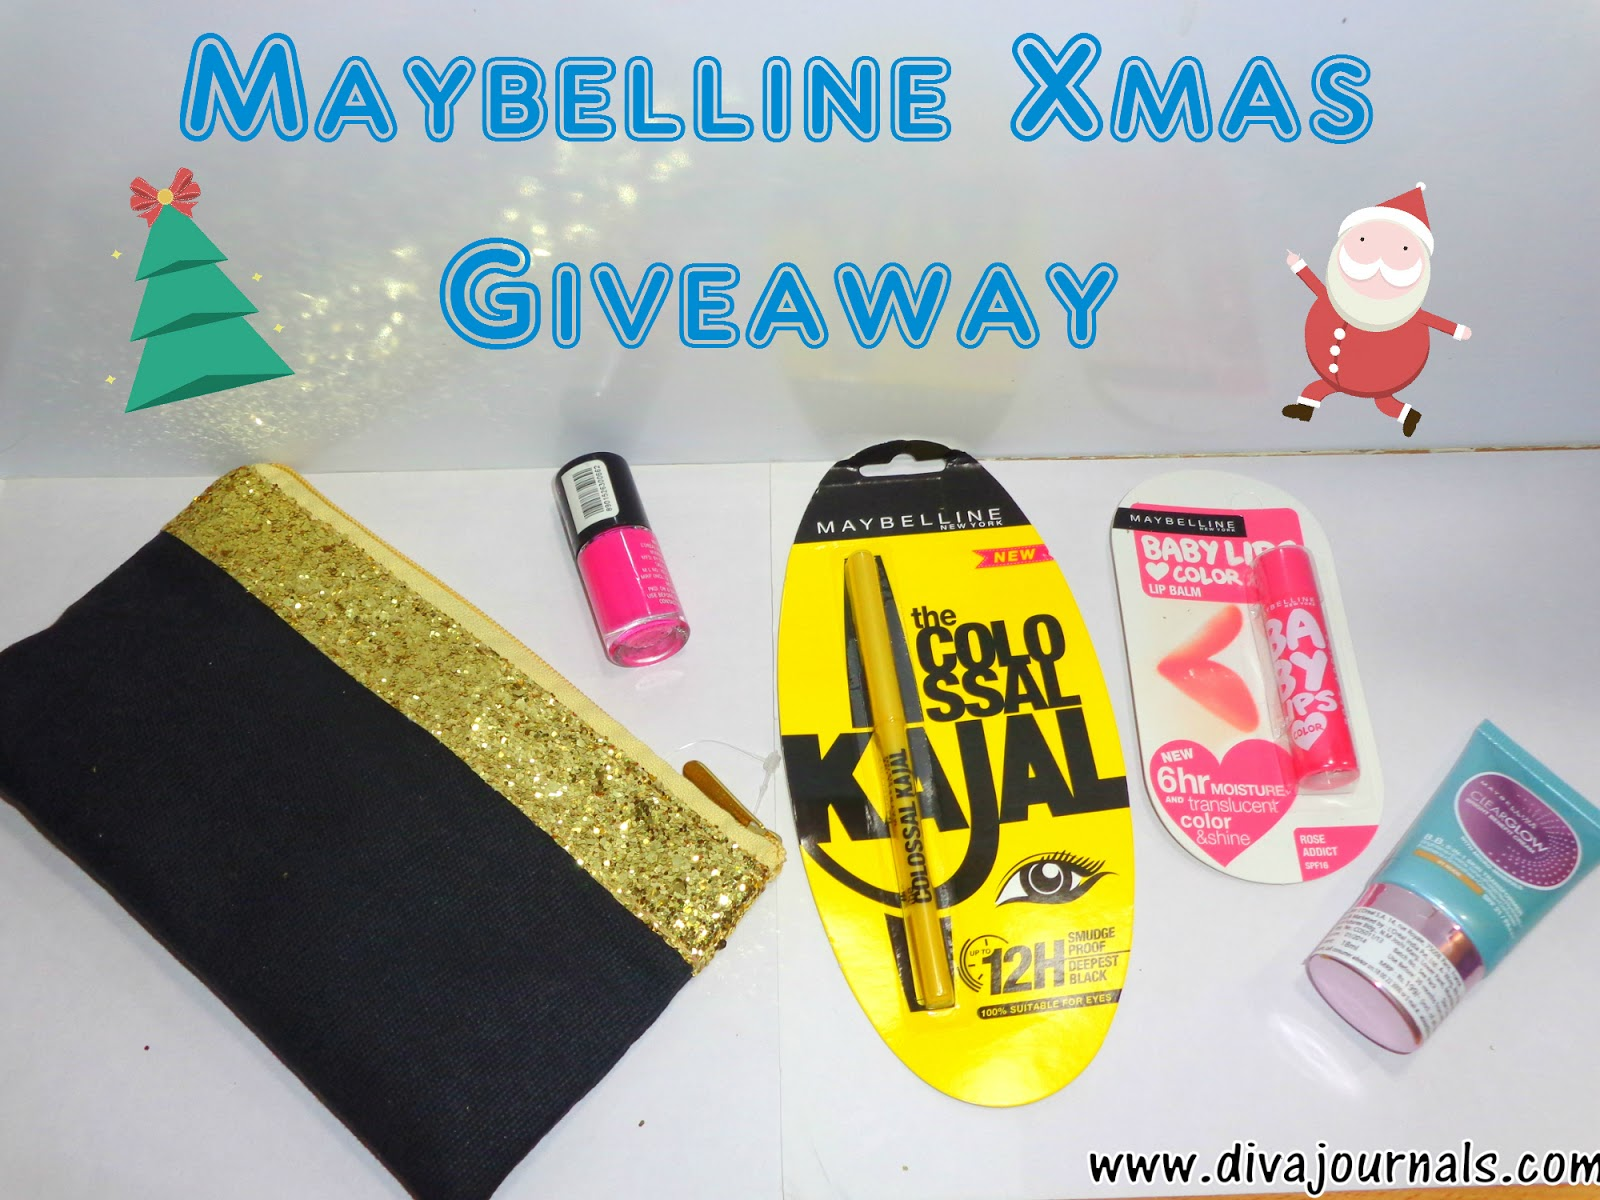 Maybelline Xmas Giveaway